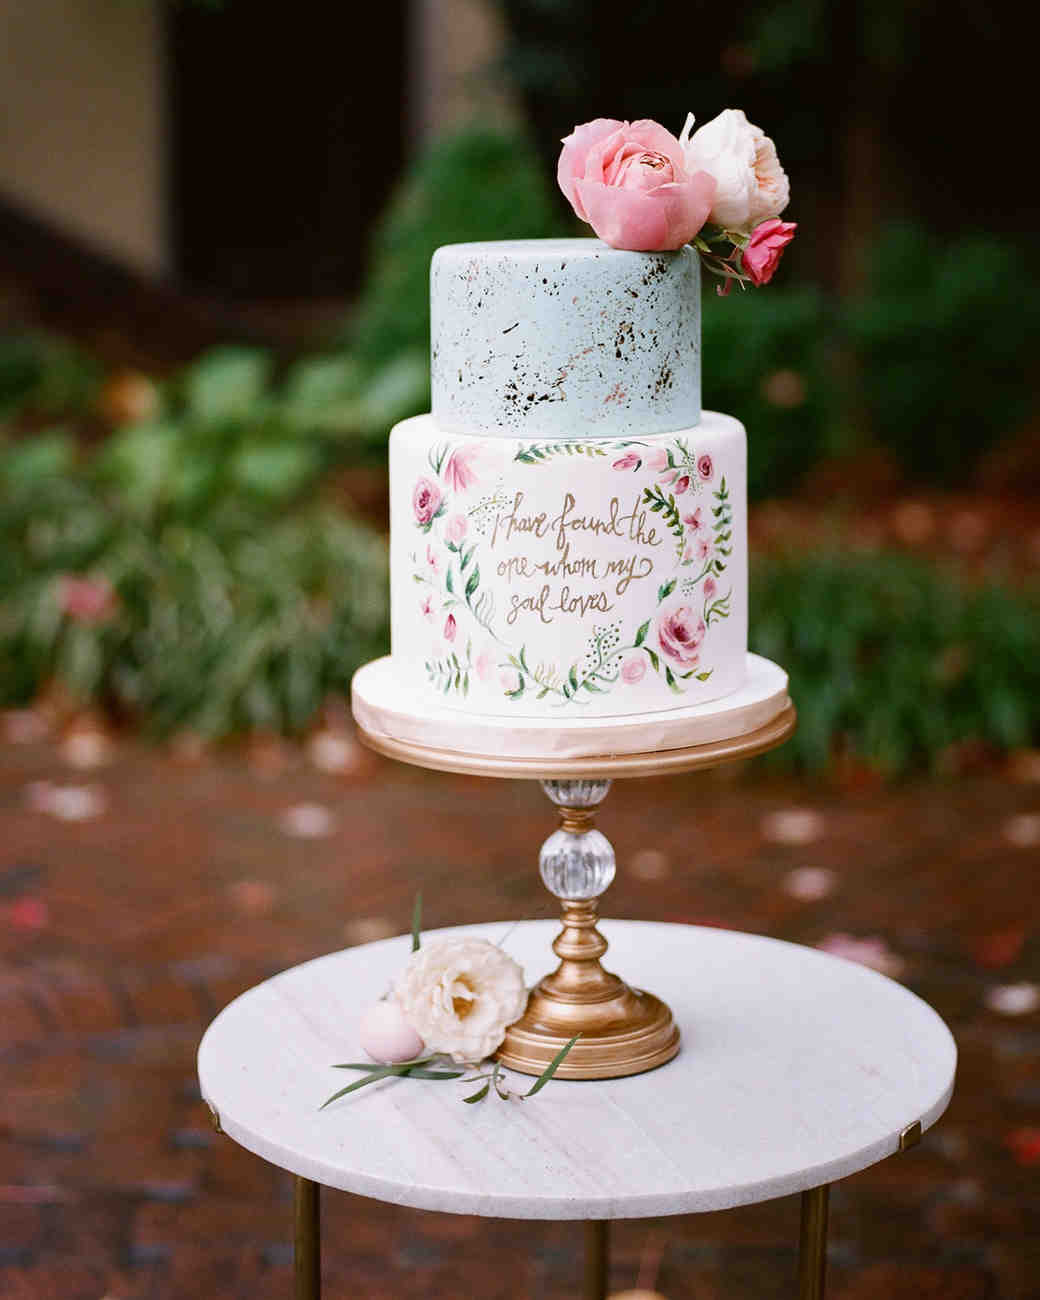 Beautiful Small Wedding Cake With Quote